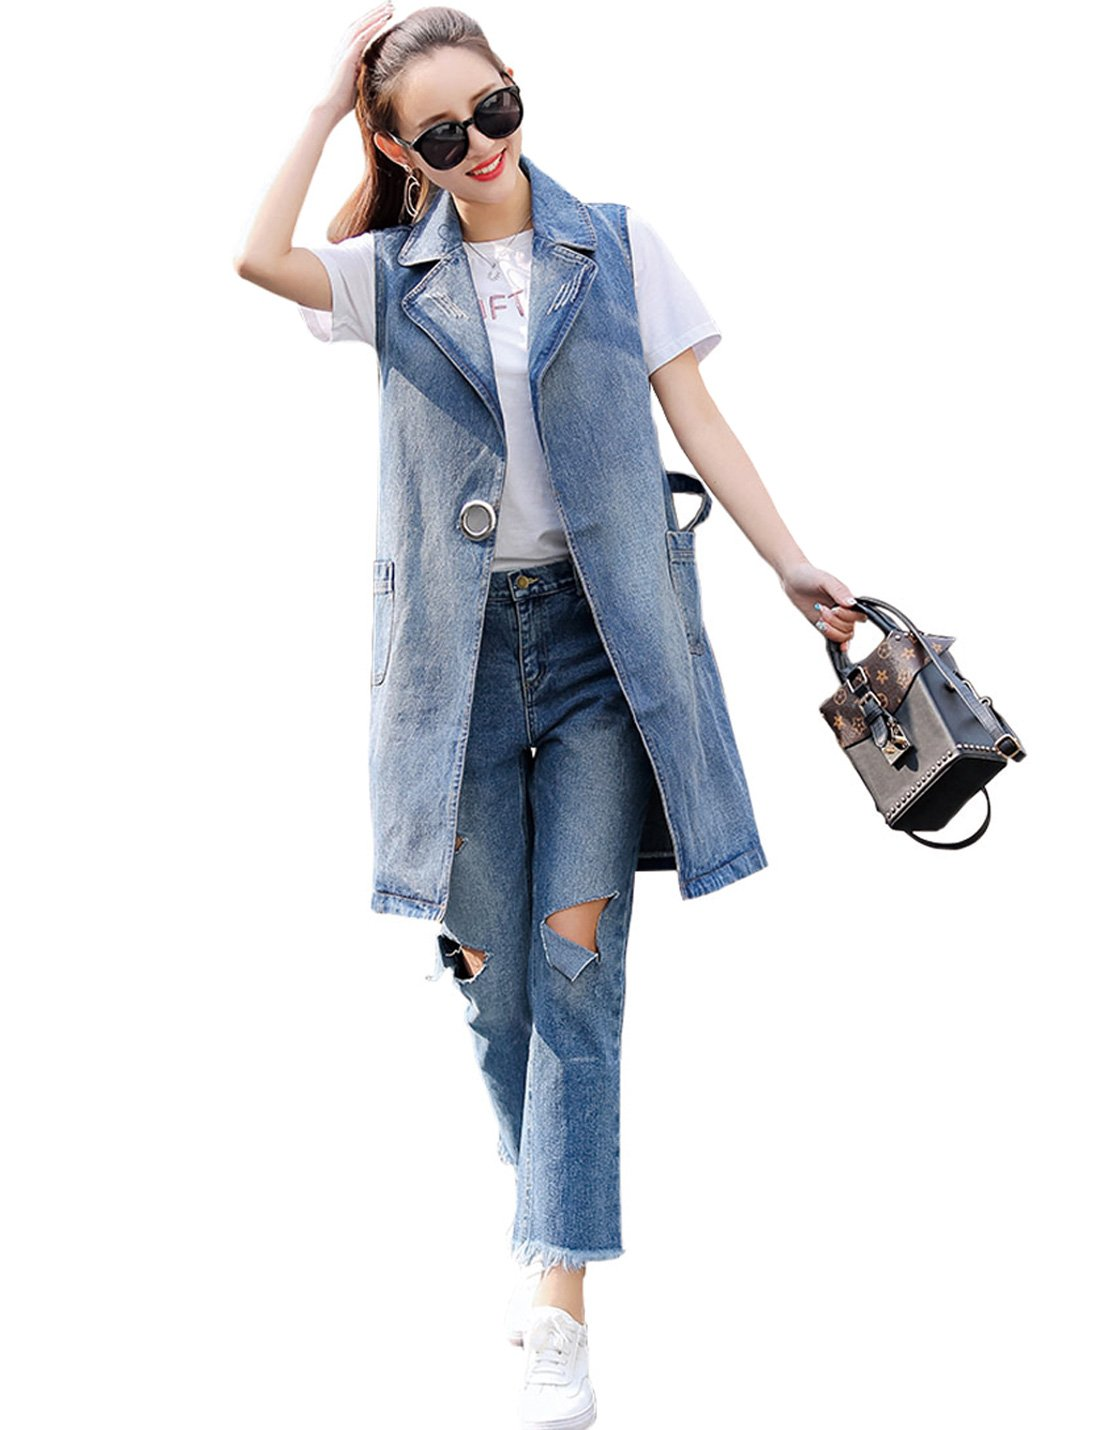 Jenkoon Women's Casual Denim Waistcoat Vest Sleeveless Coat Long Jean Tops with Turn Down Collar (Blue, Large)